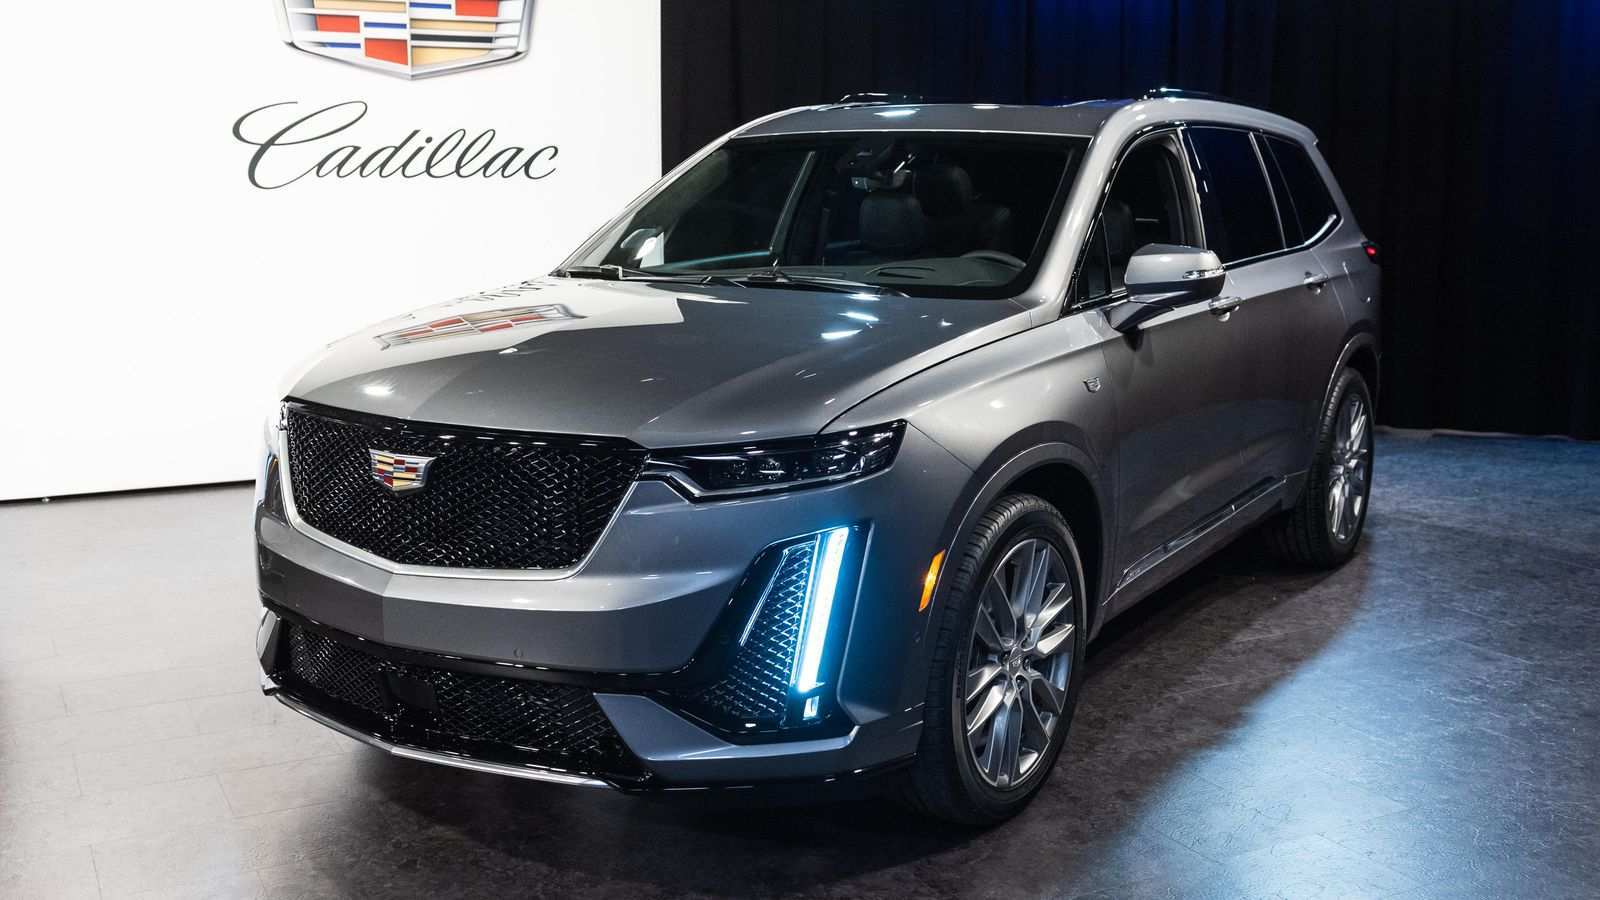 22 New 2020 Cadillac Sports Car Exterior and Interior for 2020 Cadillac Sports Car